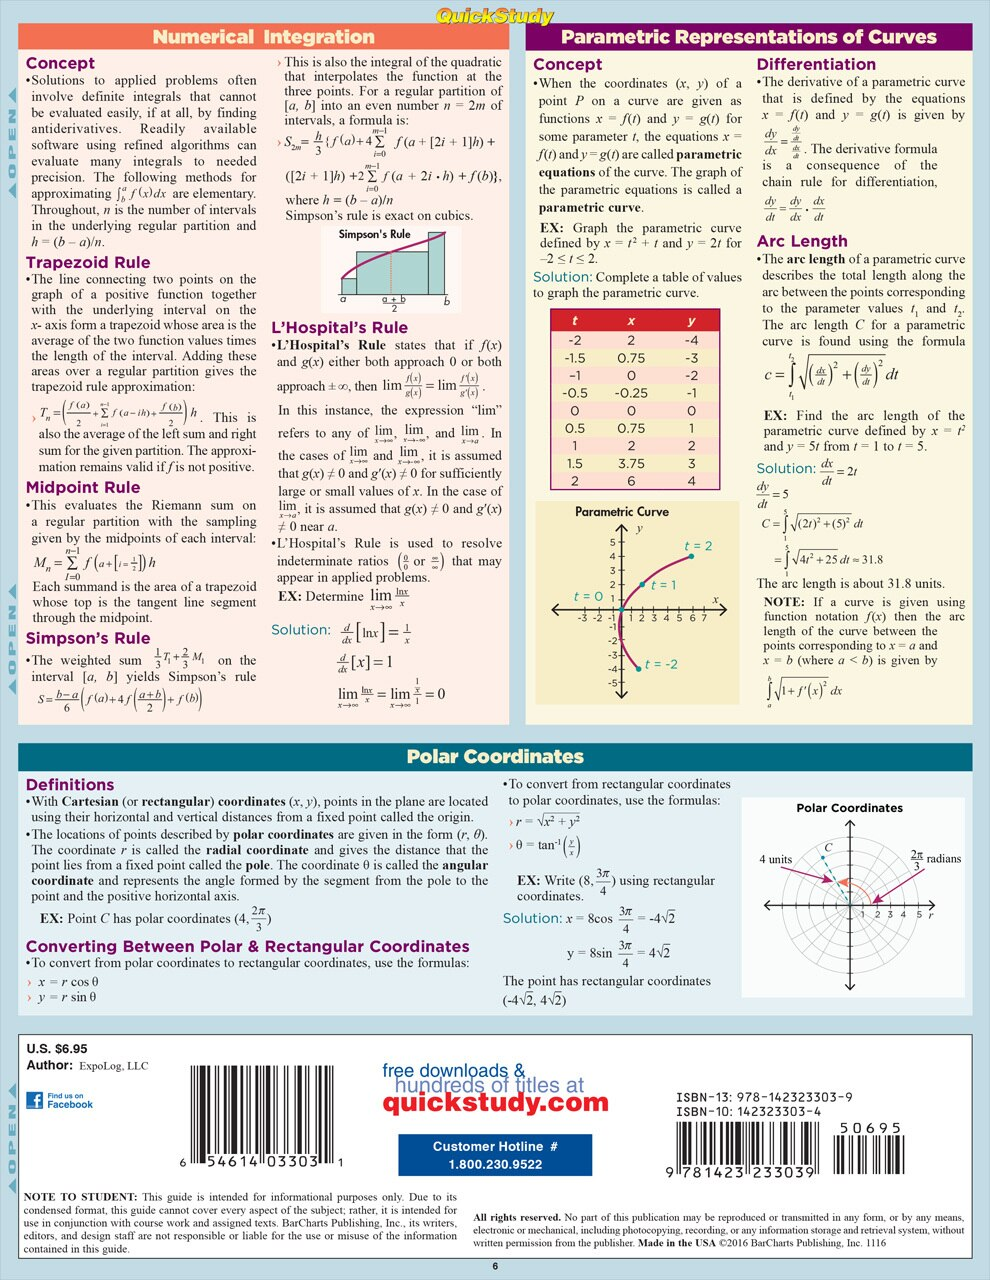 QuickStudy Quick Study Calculus 2 Laminated Study Guide BarCharts Publishing Math Reference Guide Back Image